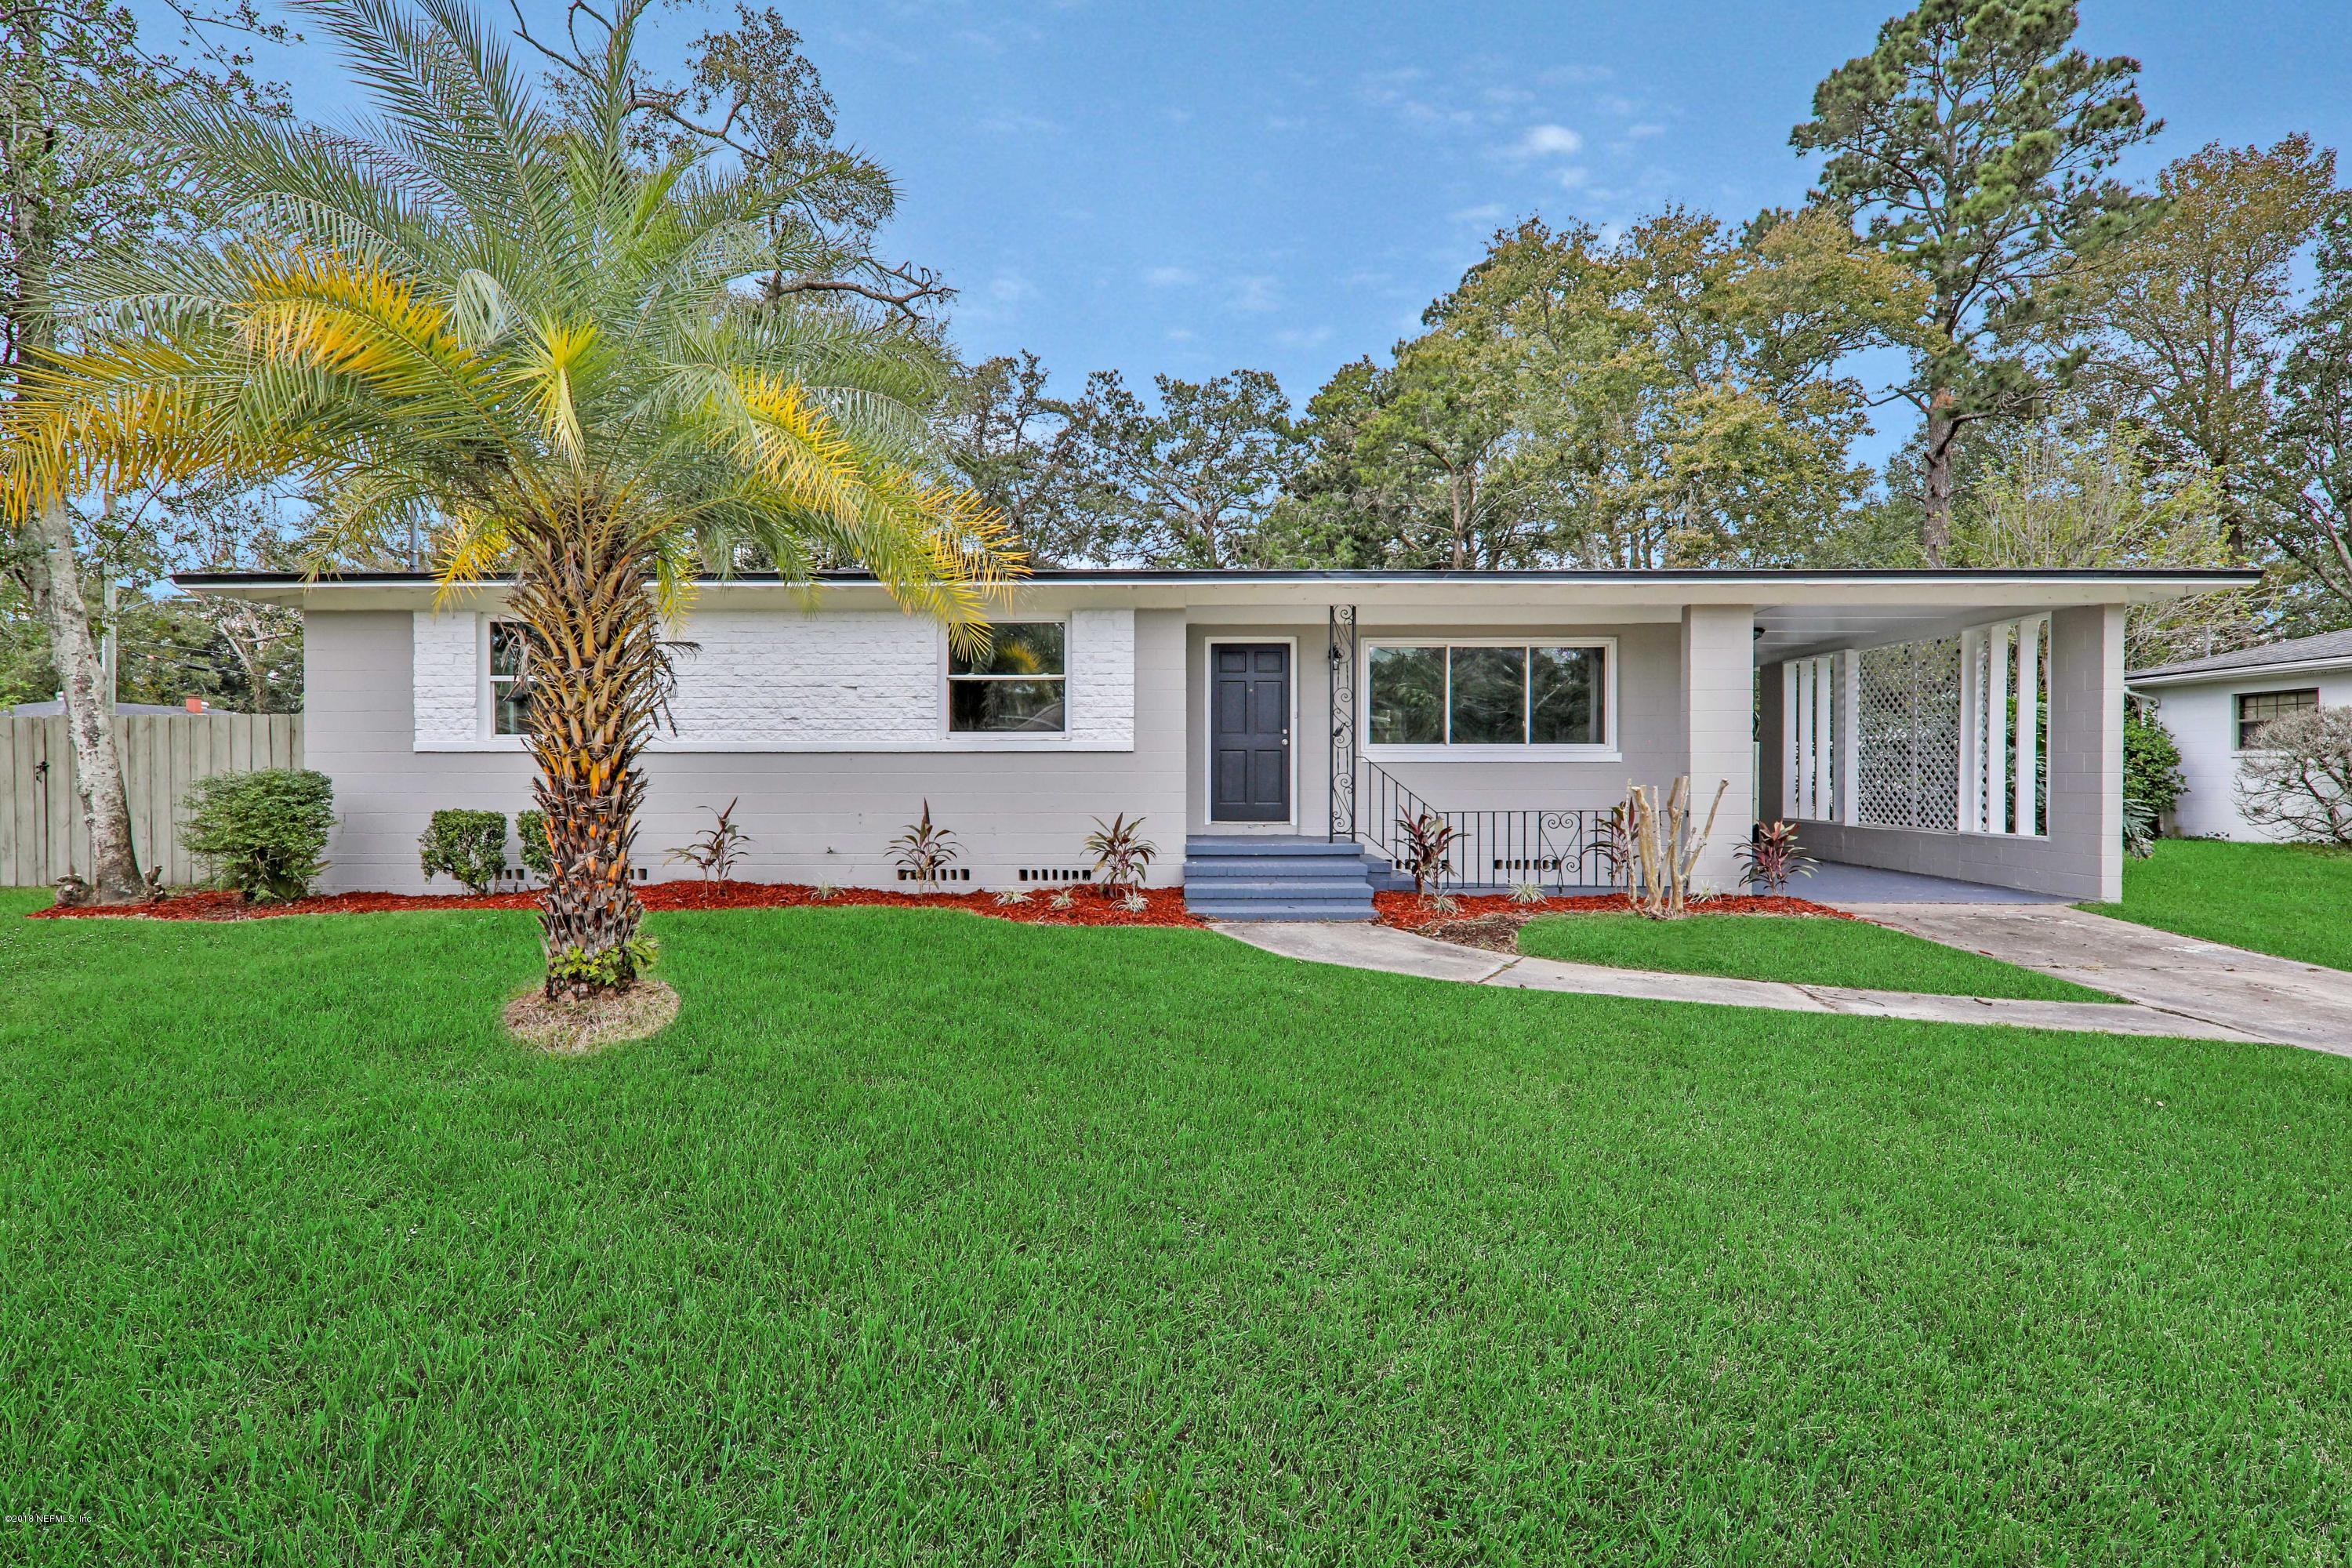 4536 JAMMES, JACKSONVILLE, FLORIDA 32210, 3 Bedrooms Bedrooms, ,2 BathroomsBathrooms,Residential - single family,For sale,JAMMES,970580